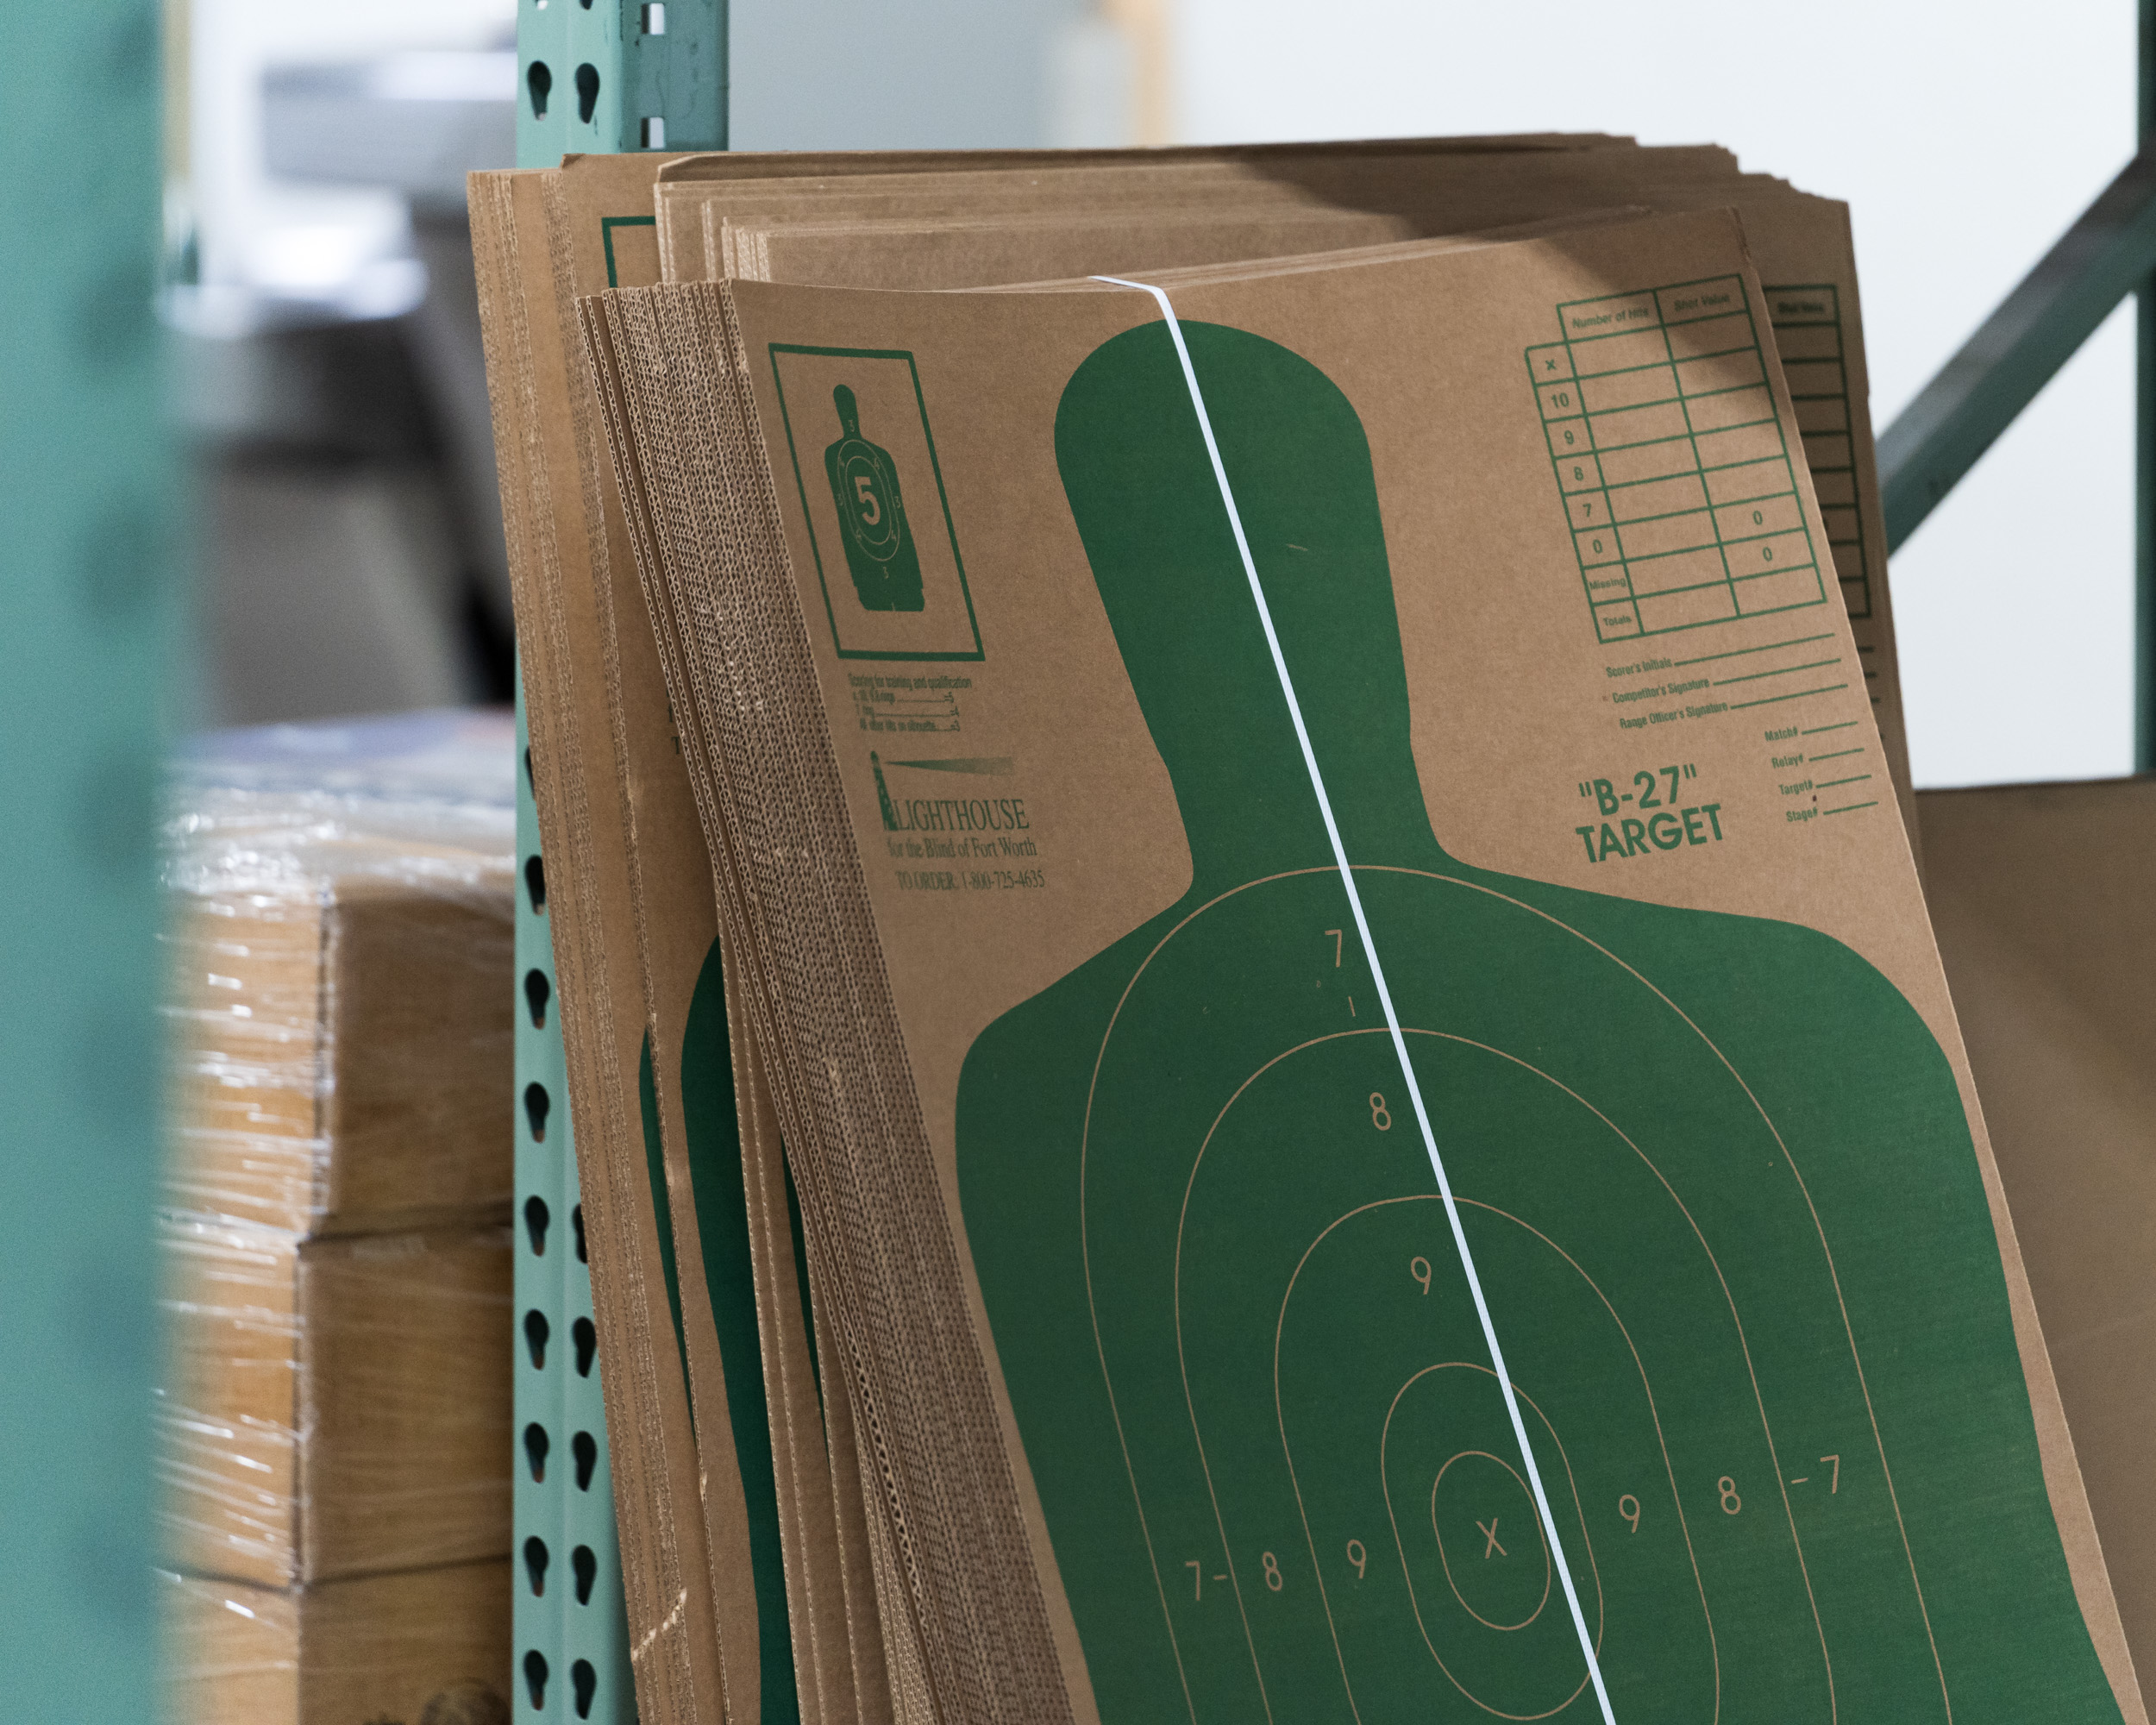 A cardboard with a figure of a man used for target practice